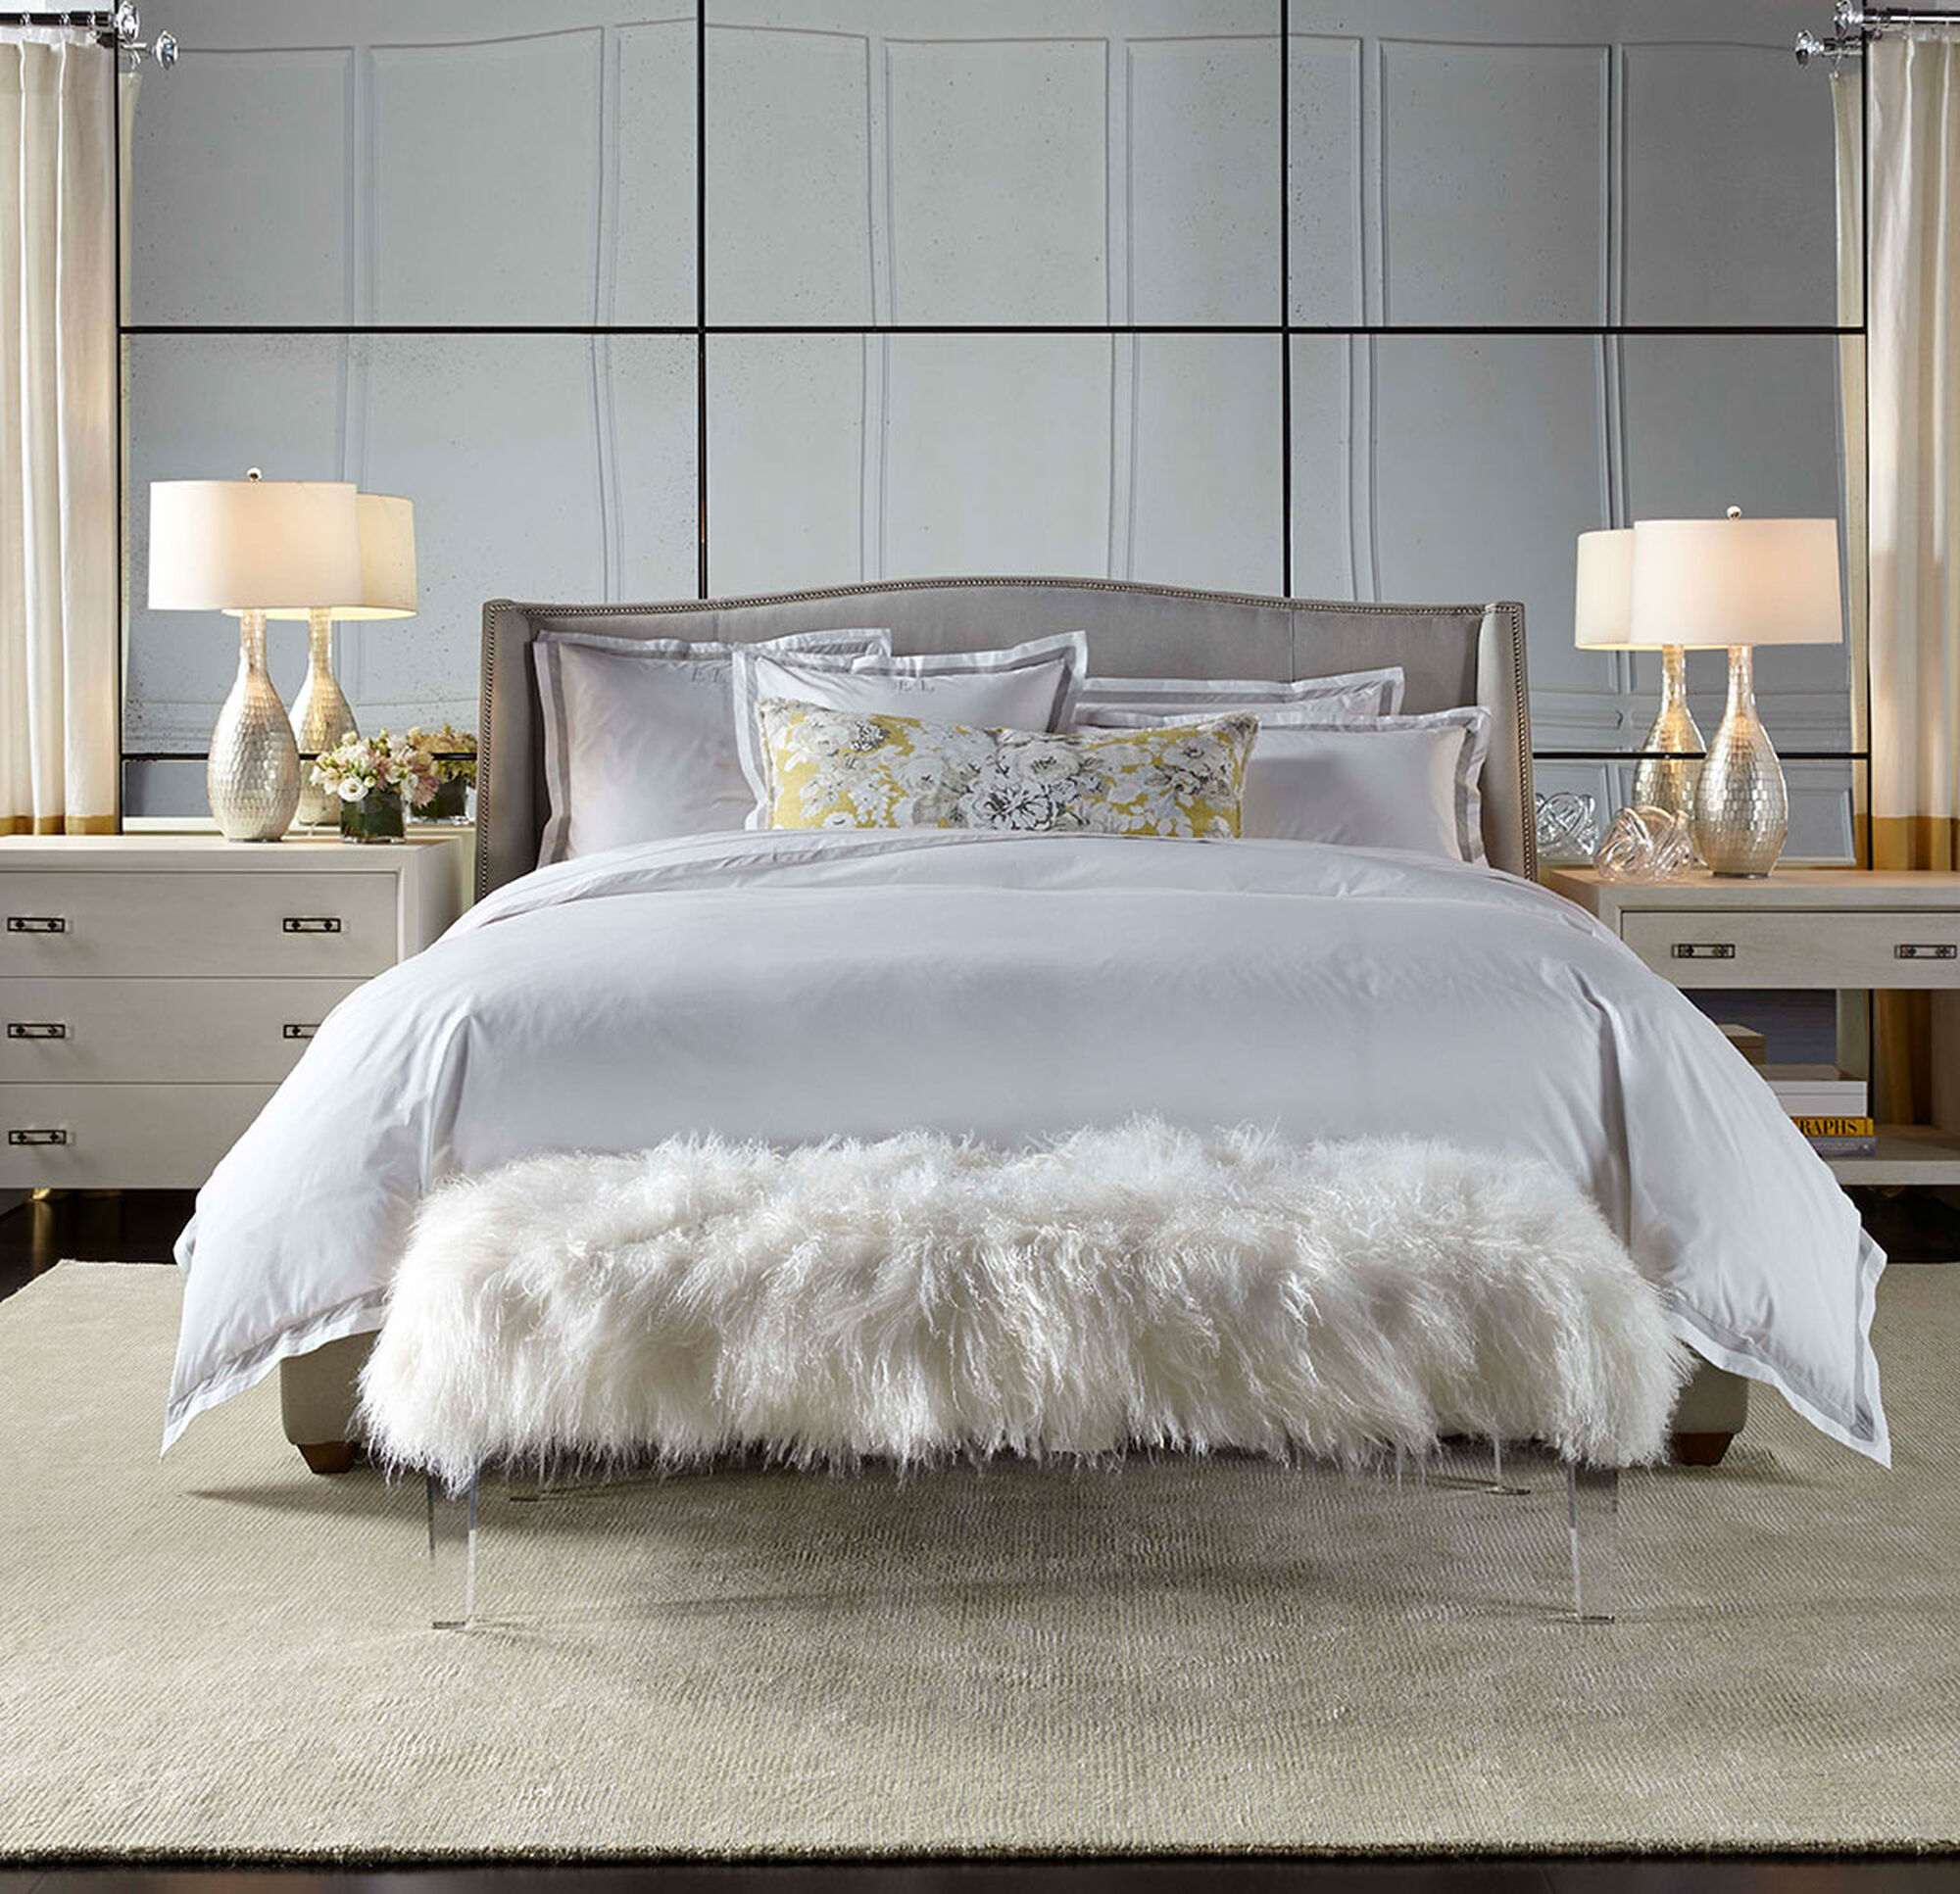 furnitu bedroom wood products queen il eodg fullxfull frame king furniture cal california bed handmade